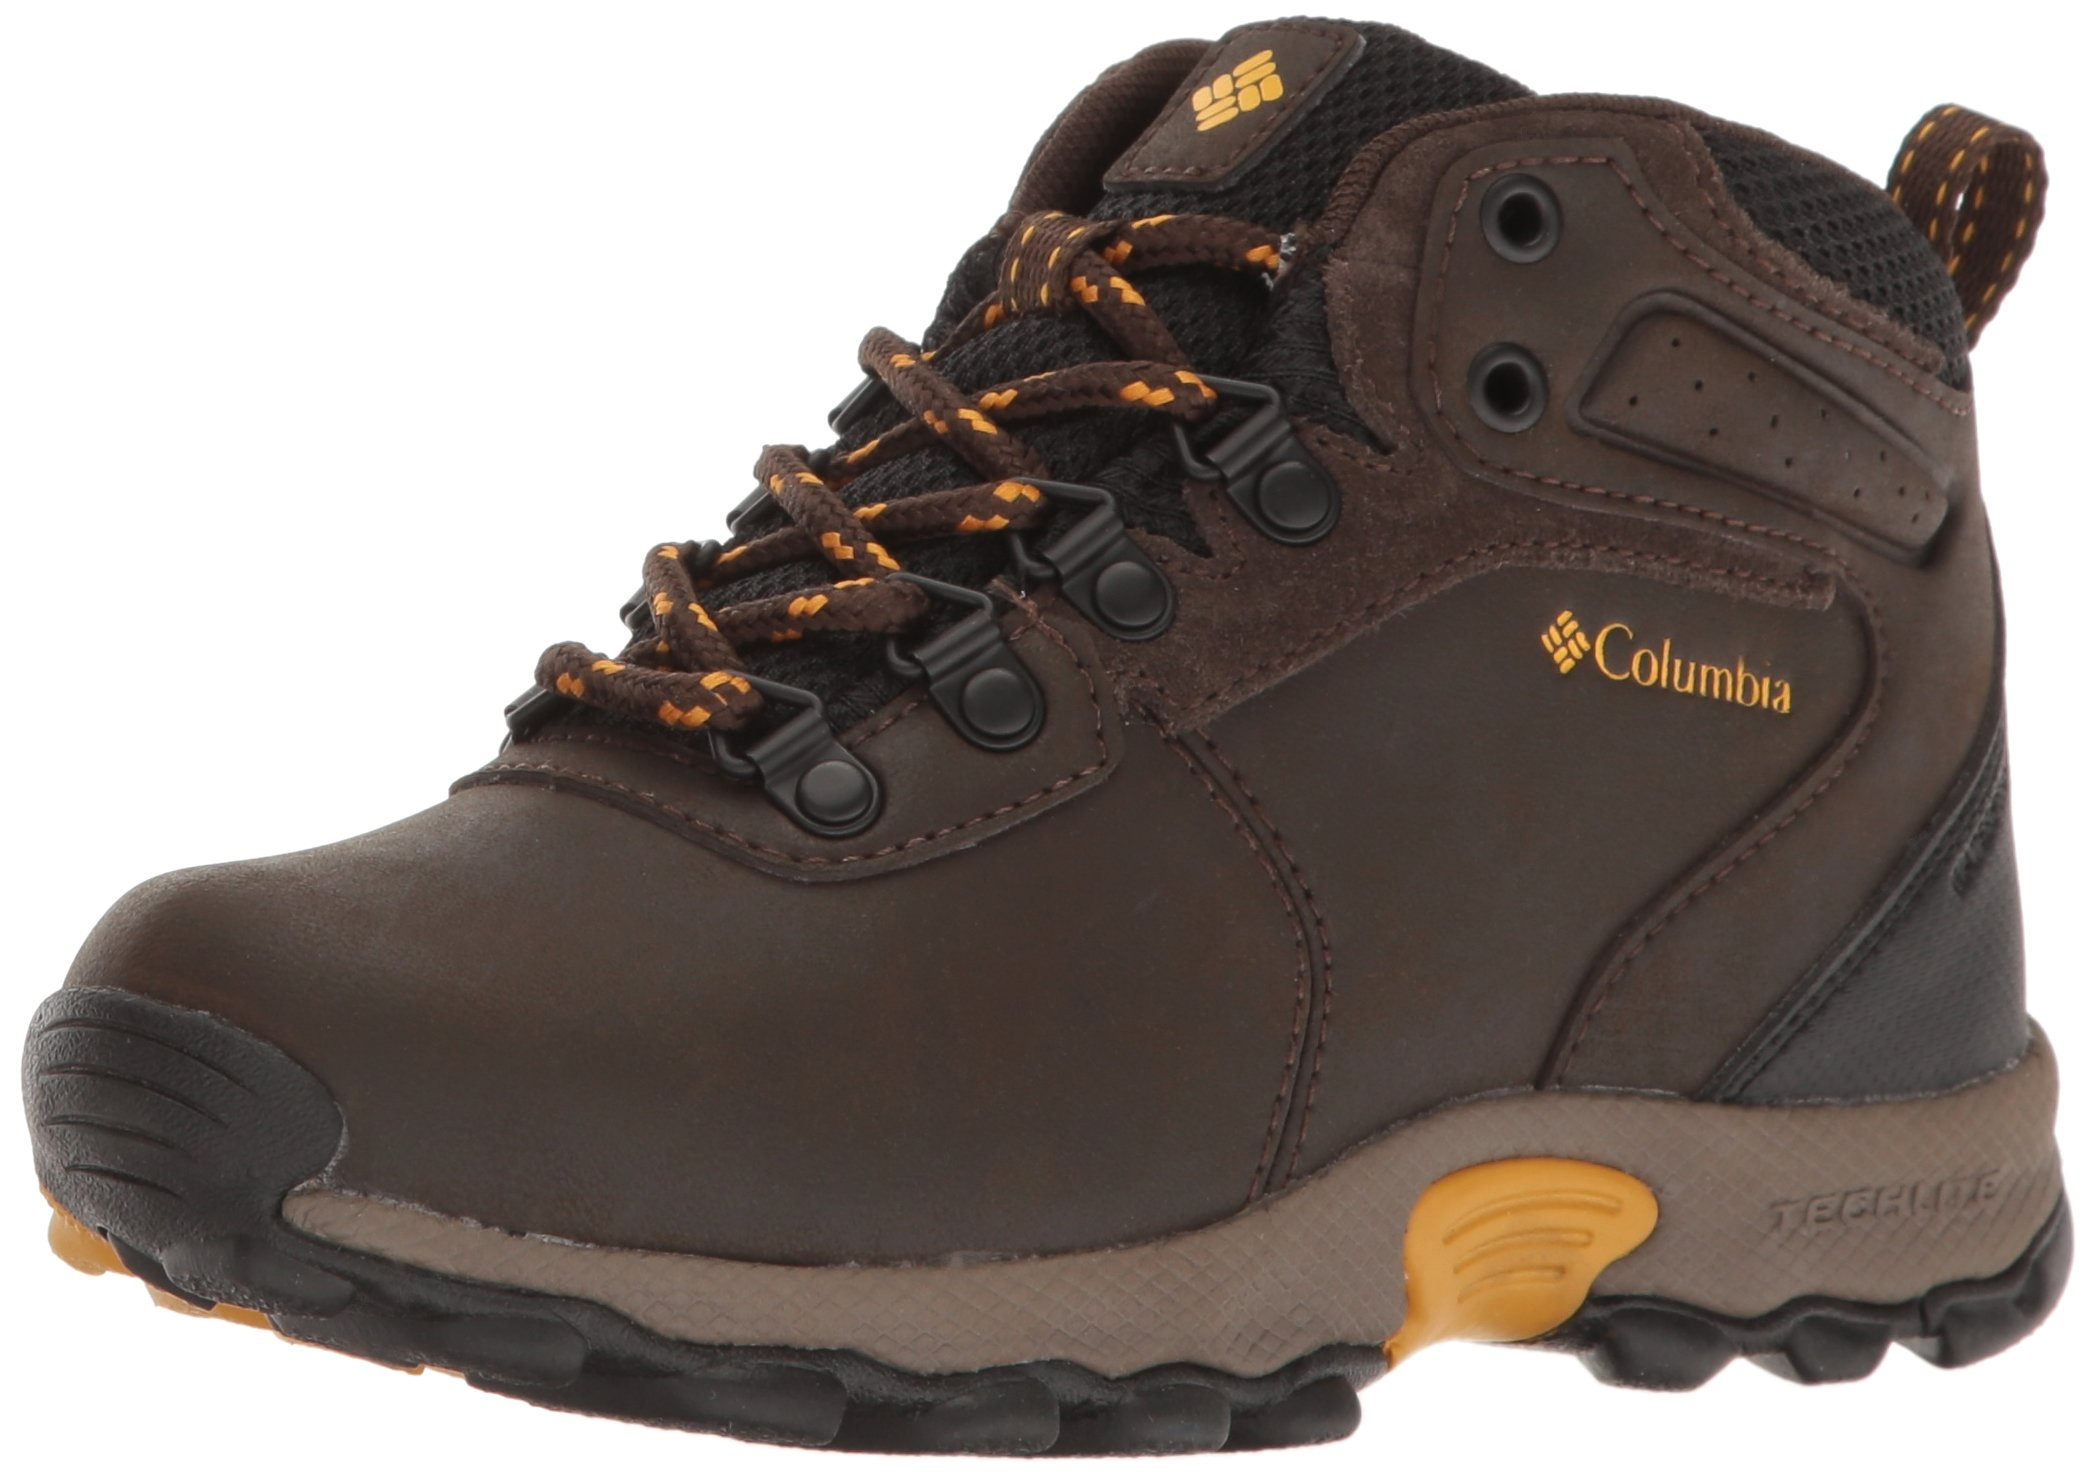 Columbia Unisex Youth Newton Ridge Hiking Shoe Cordovan, Golden Yellow 5 Regular US Big Kid